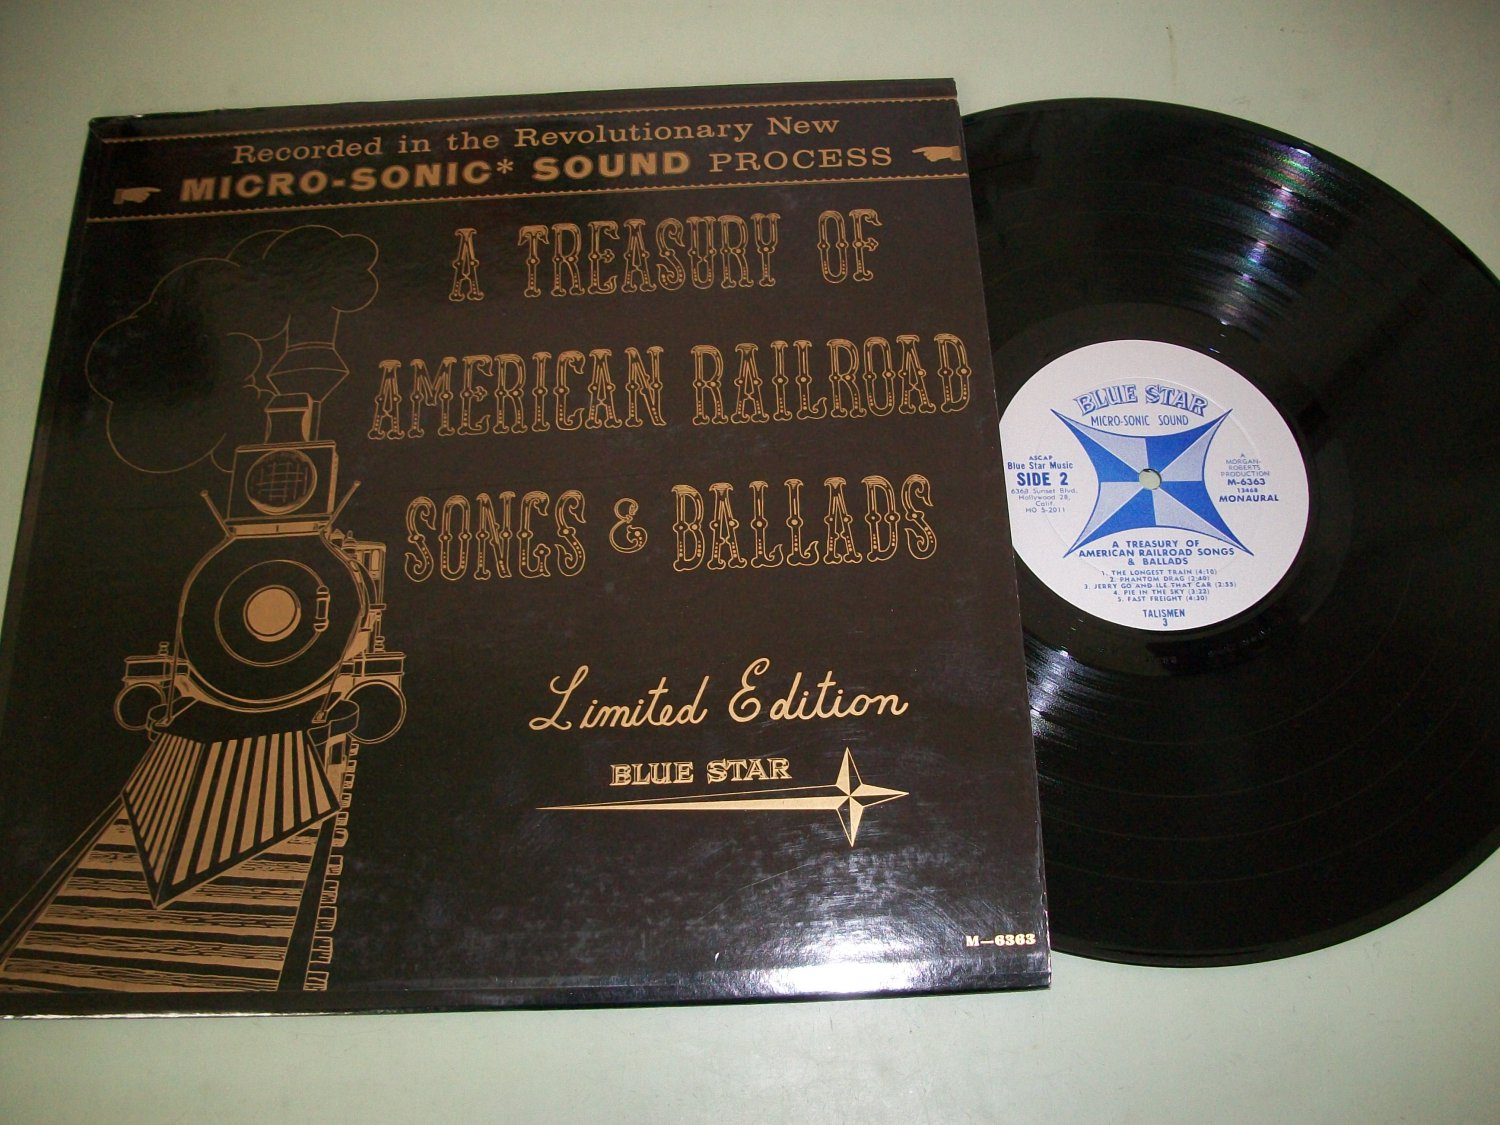 The Talismen 3 - American Railroad Songs And Ballads - BLUE STAR 6363 Record LP